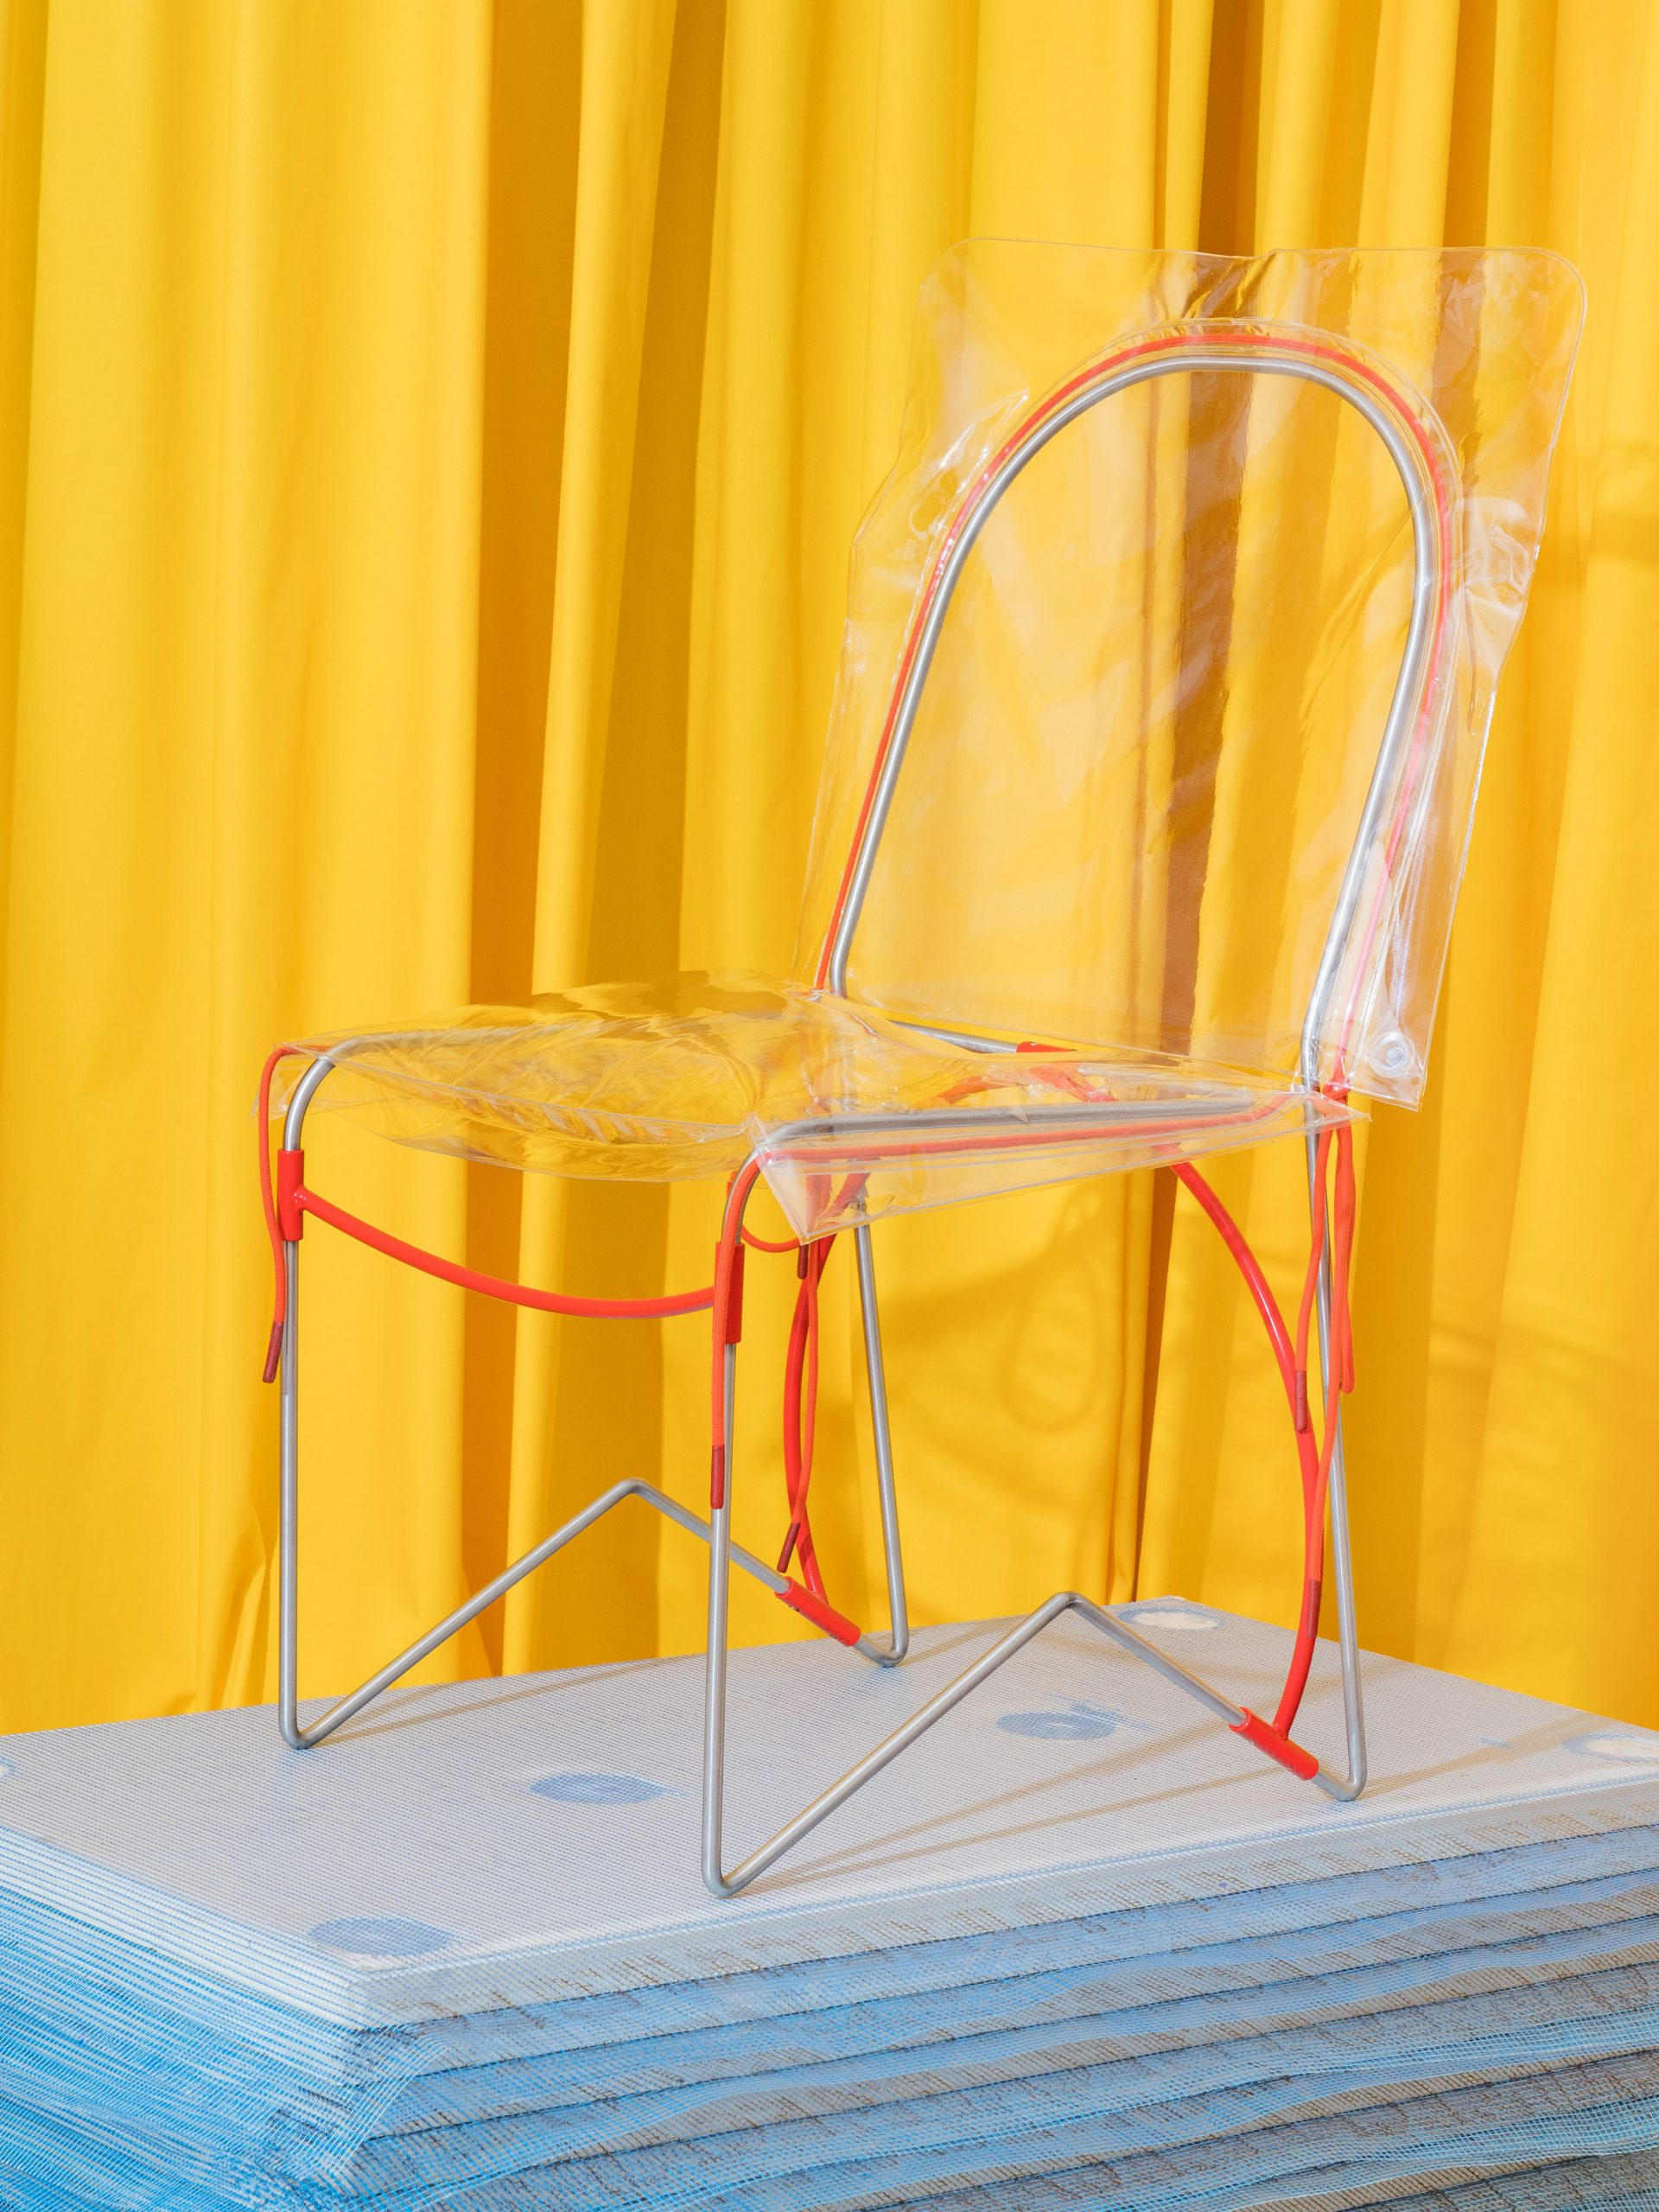 The Zhora chair by Older studio and Alexander Vinther